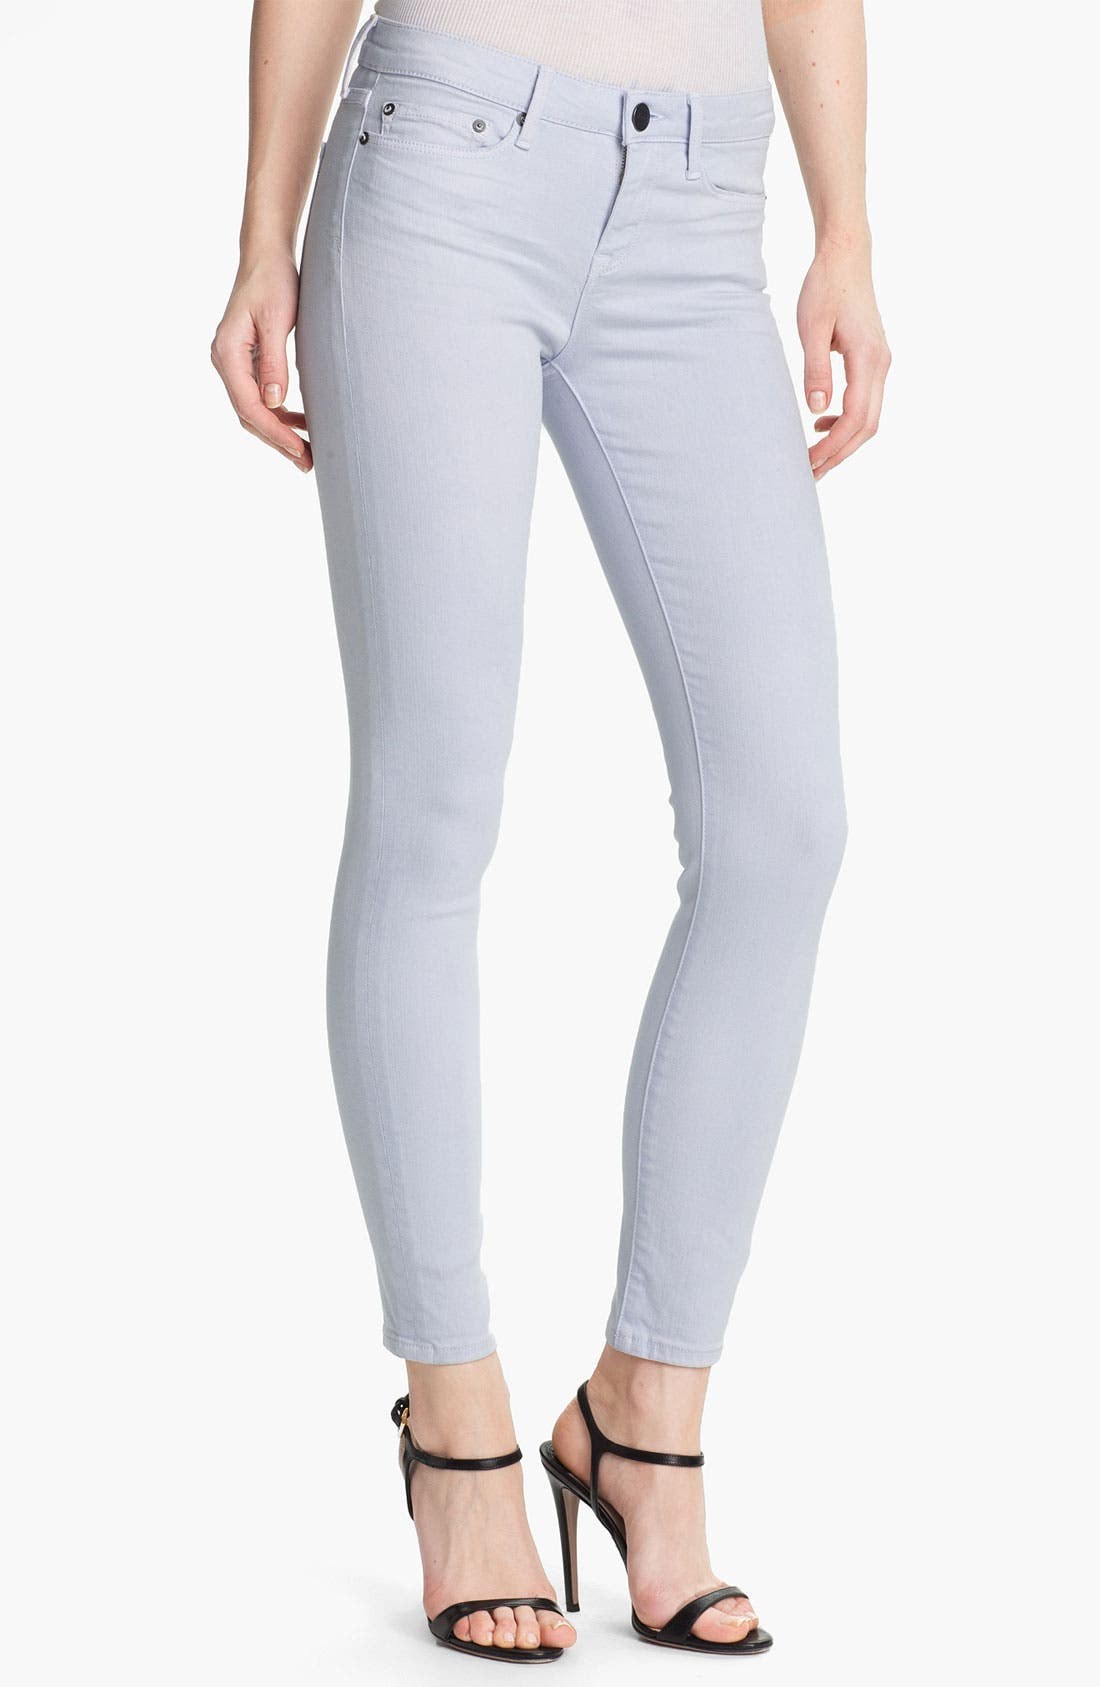 Alternate Image 1 Selected - Vince Colored Skinny Stretch Ankle Jeans (Lilac)